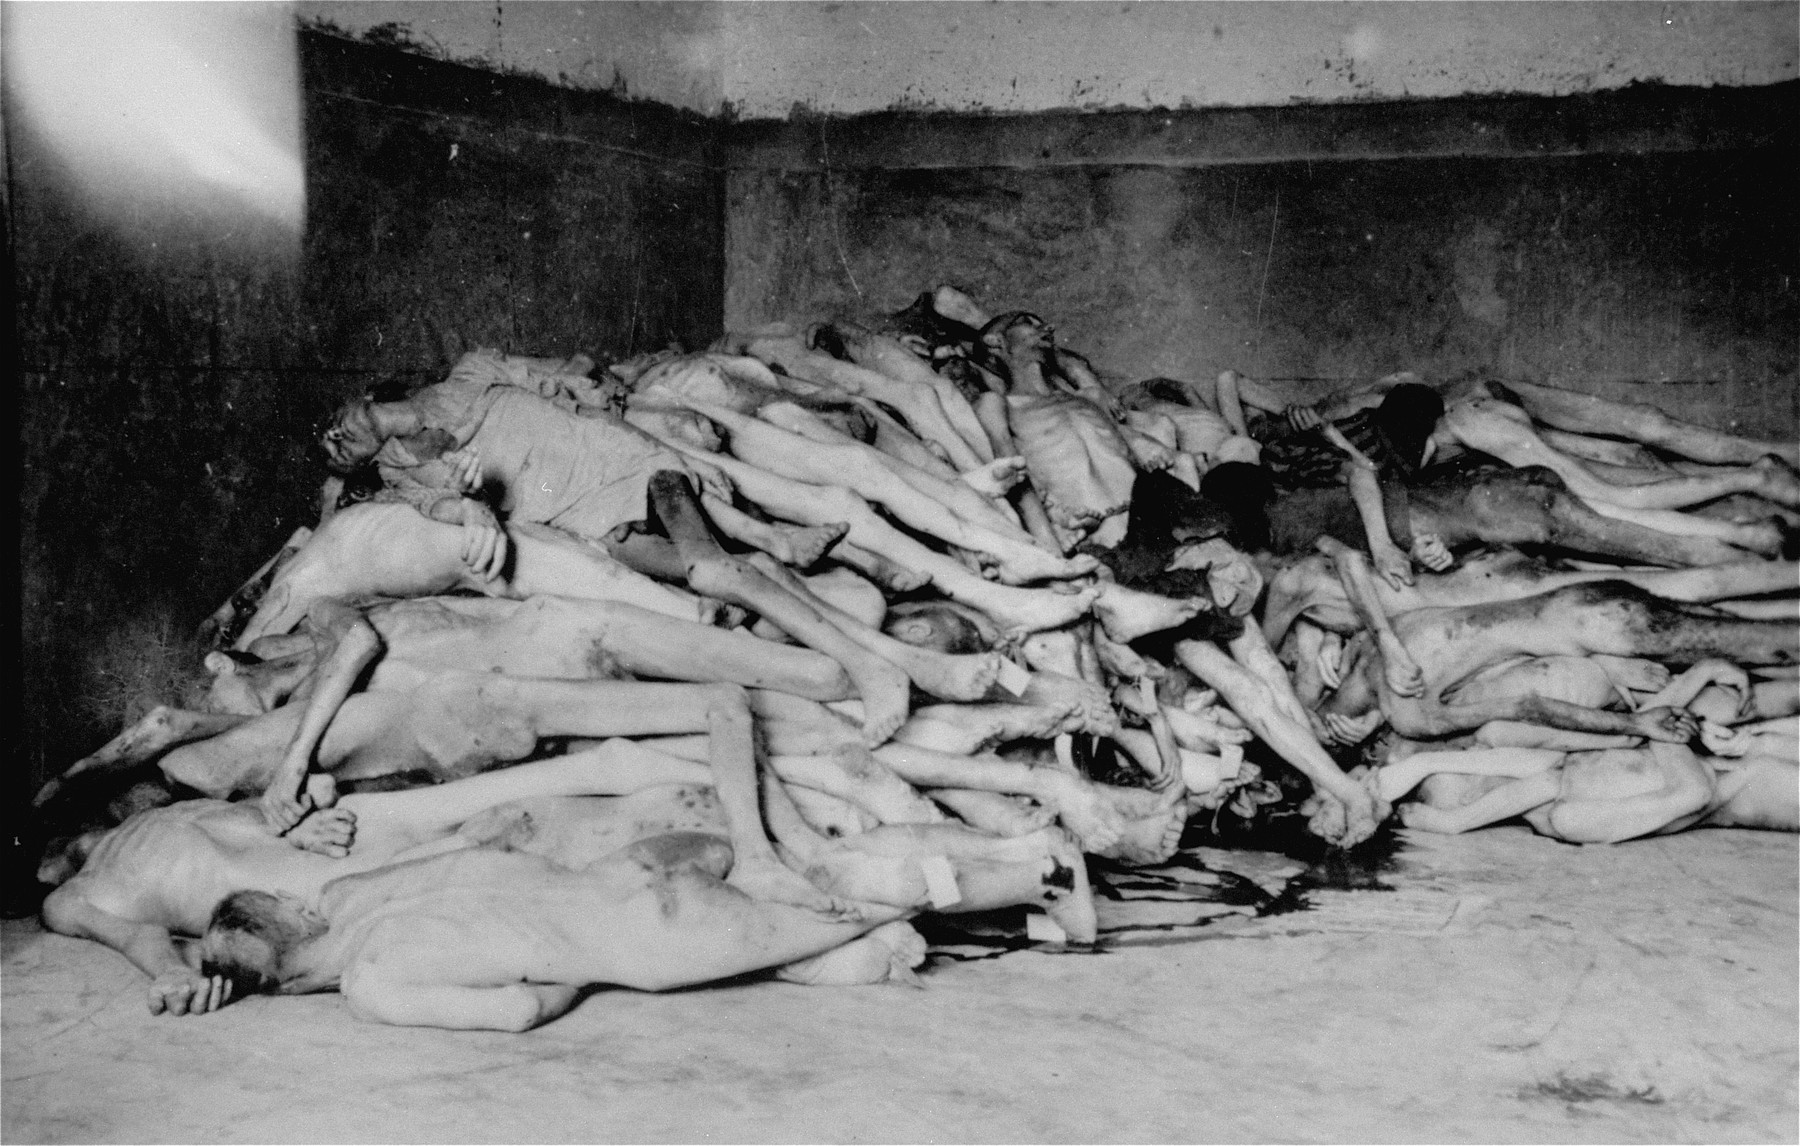 The bodies of former prisoners are piled in the crematorium mortuary in the newly liberated Dachau concentration camp.